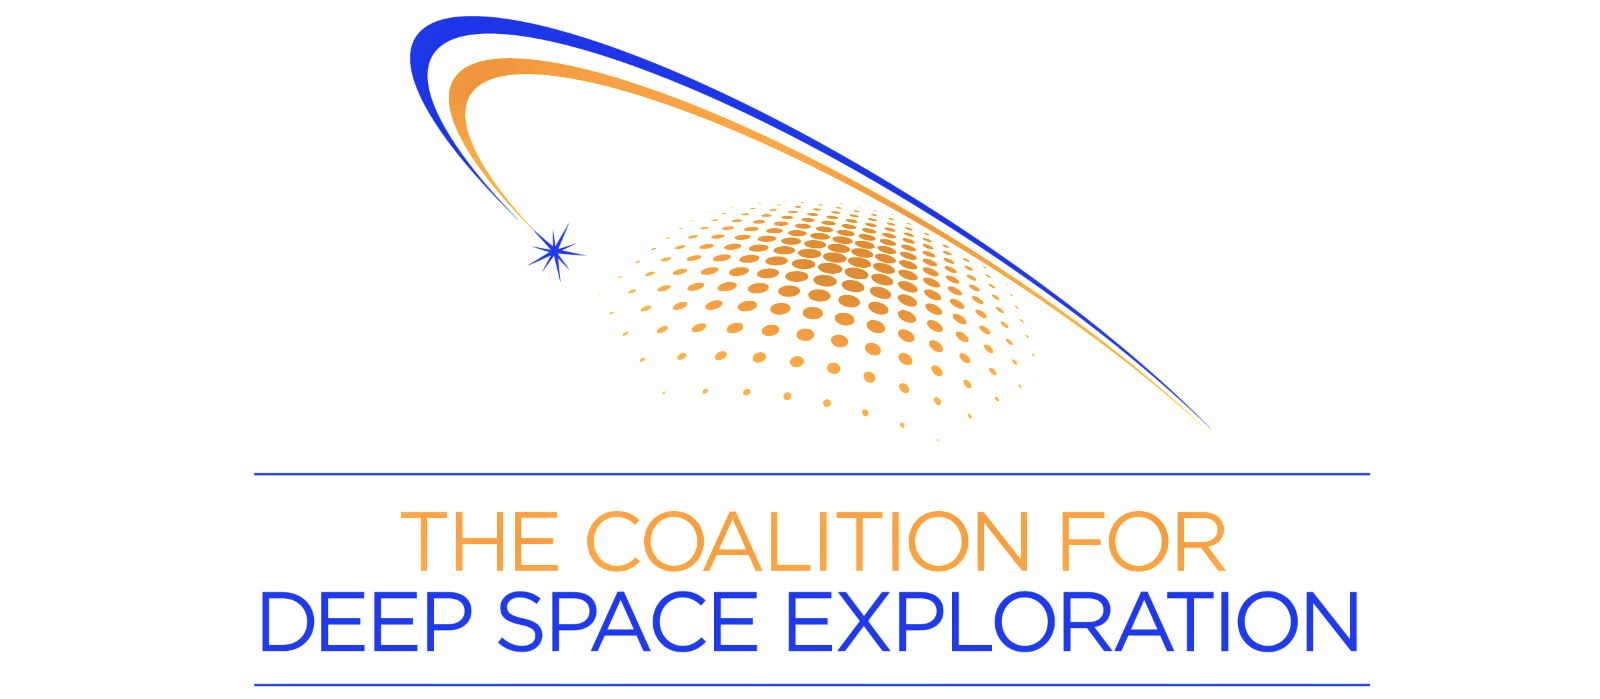 Coalition for Deep Space Exploration logo.